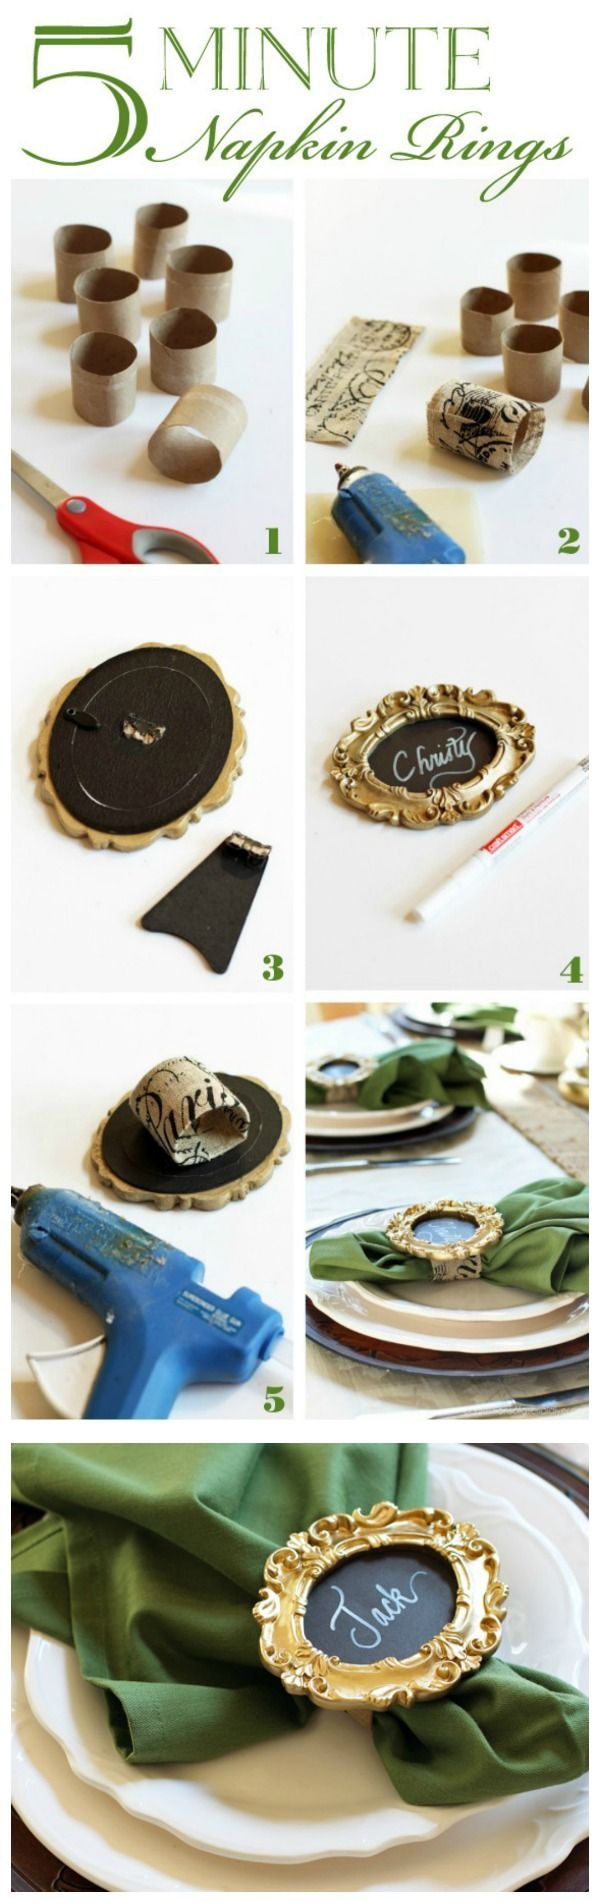 Five minute napkin rings using mini photo frames from for Diy fall napkin rings